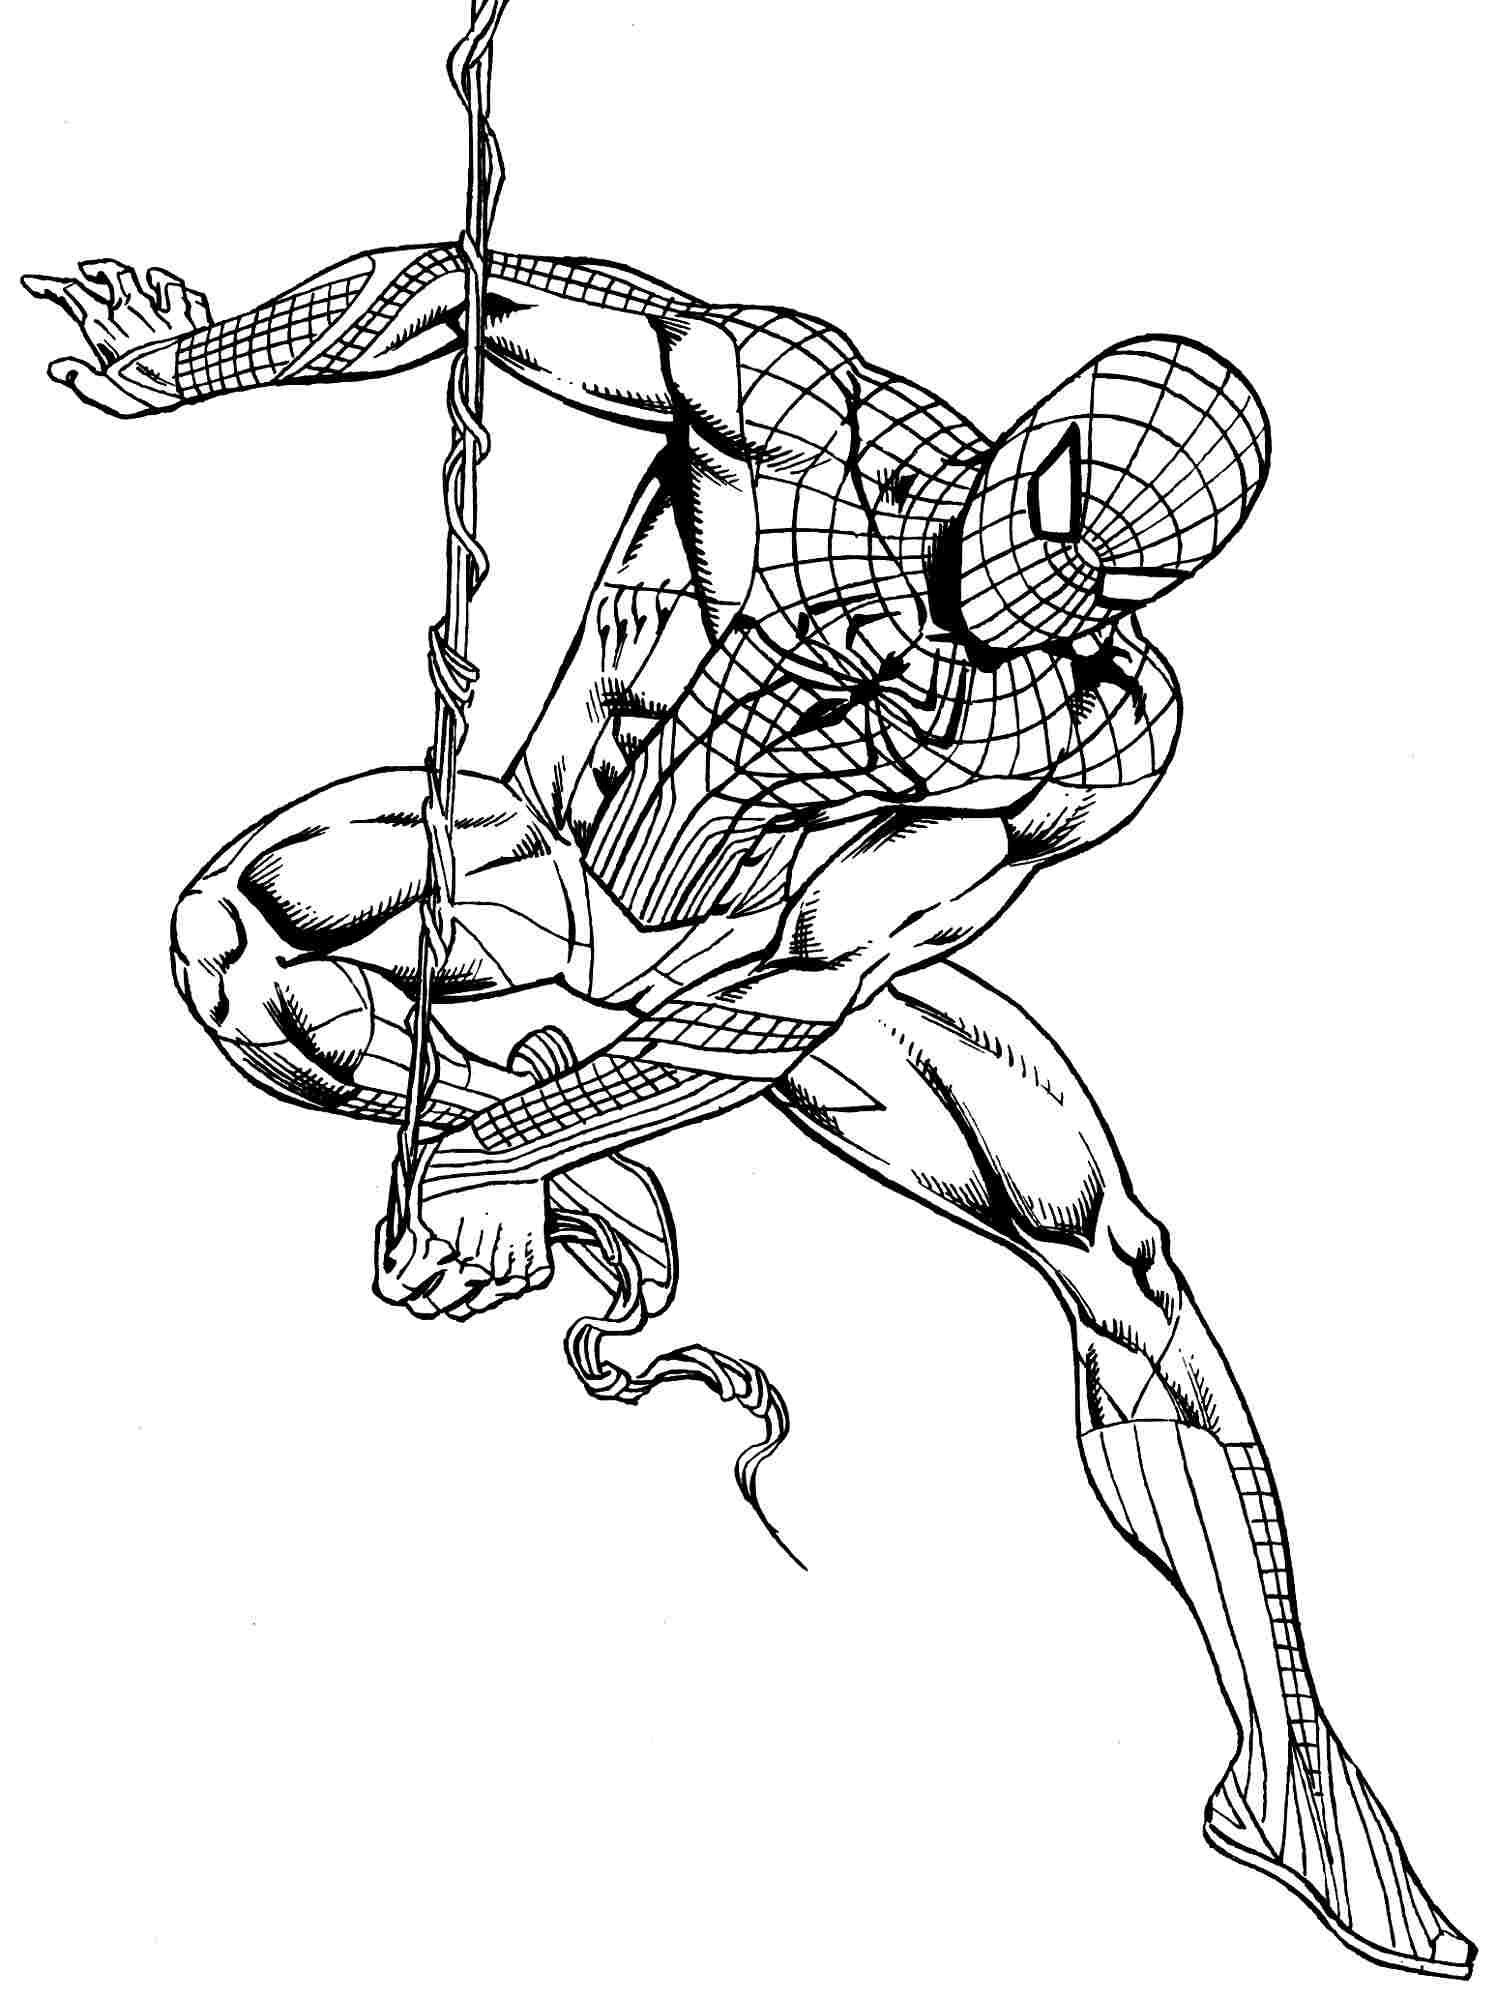 Spiderman On Rope Superhero Coloring Pages Avengers Coloring